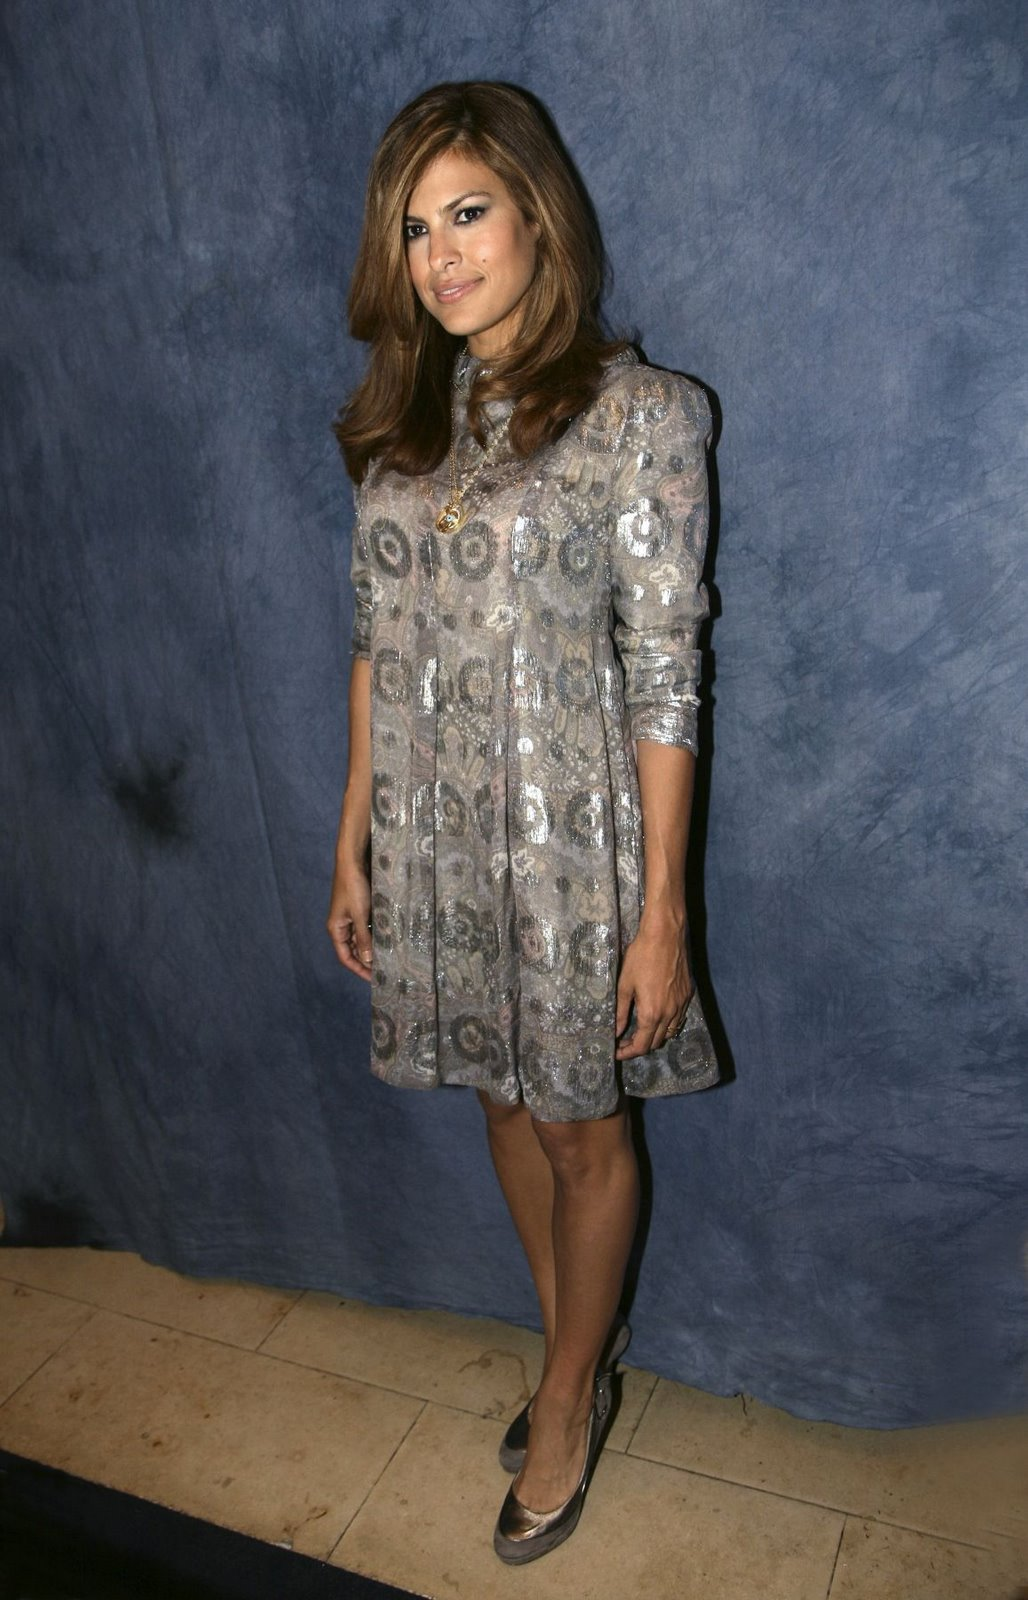 Eva Mendes is rocking a little silver dress.